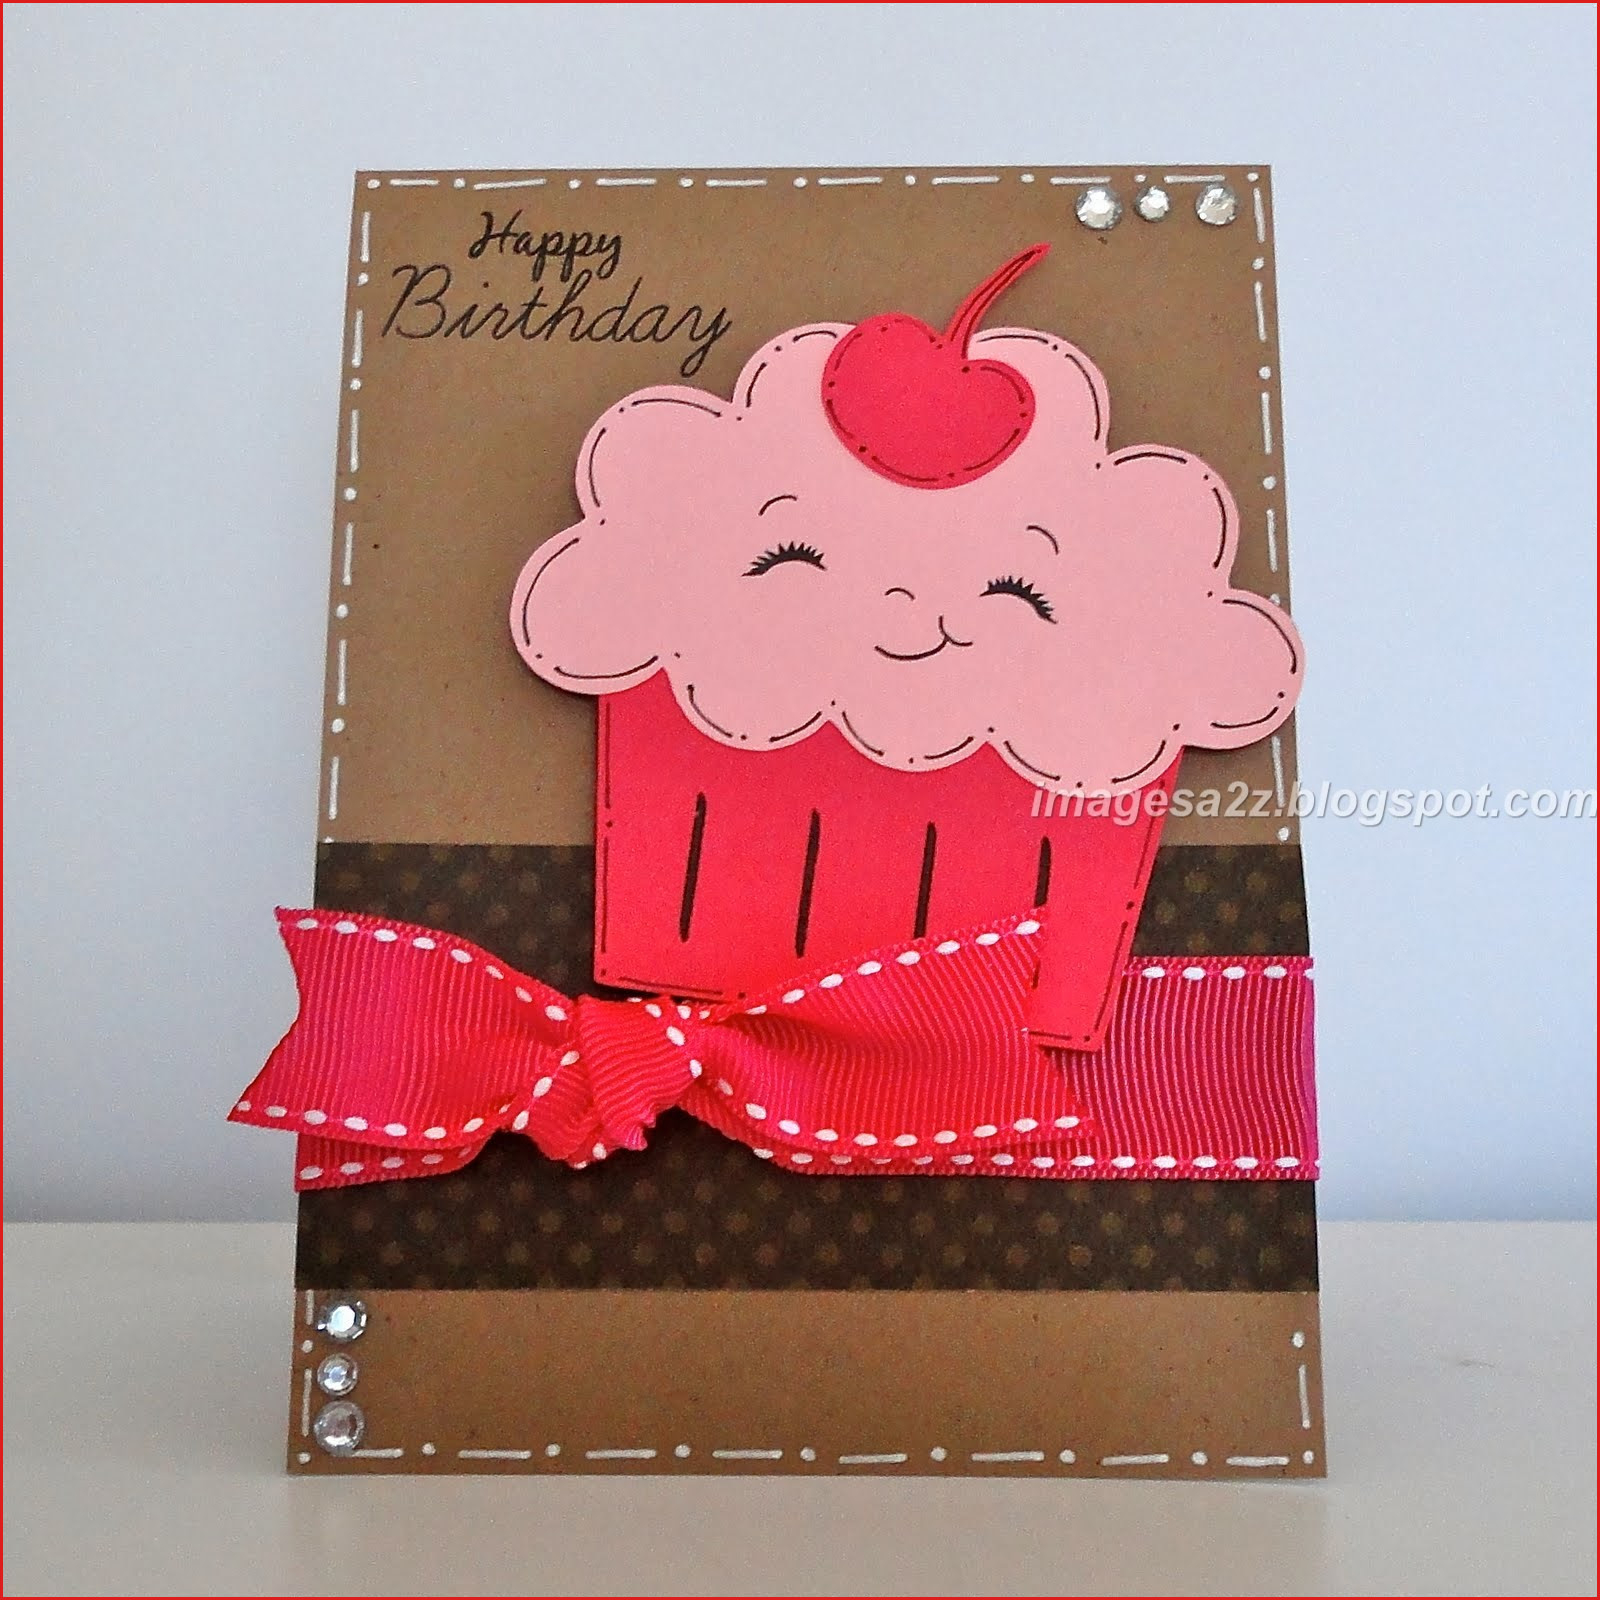 Birthday Cards Ideas For Him Birthday Card Making Ideas For Husband Birthday Card Ideas Make